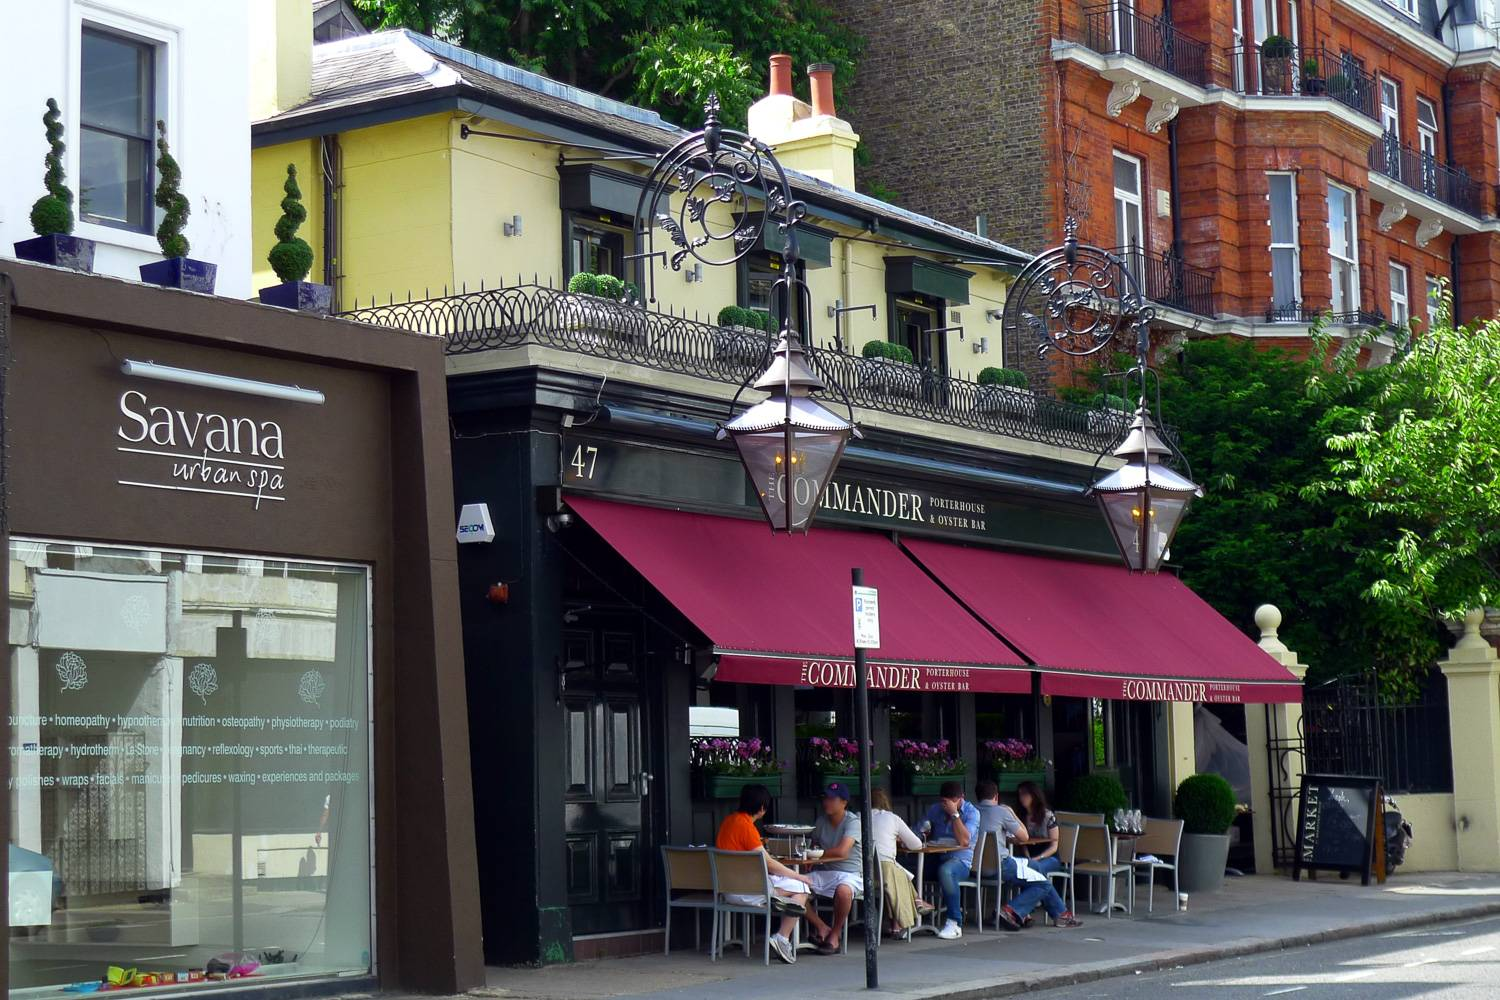 Image of people sitting outdoors in front of a London neighborhood pub.